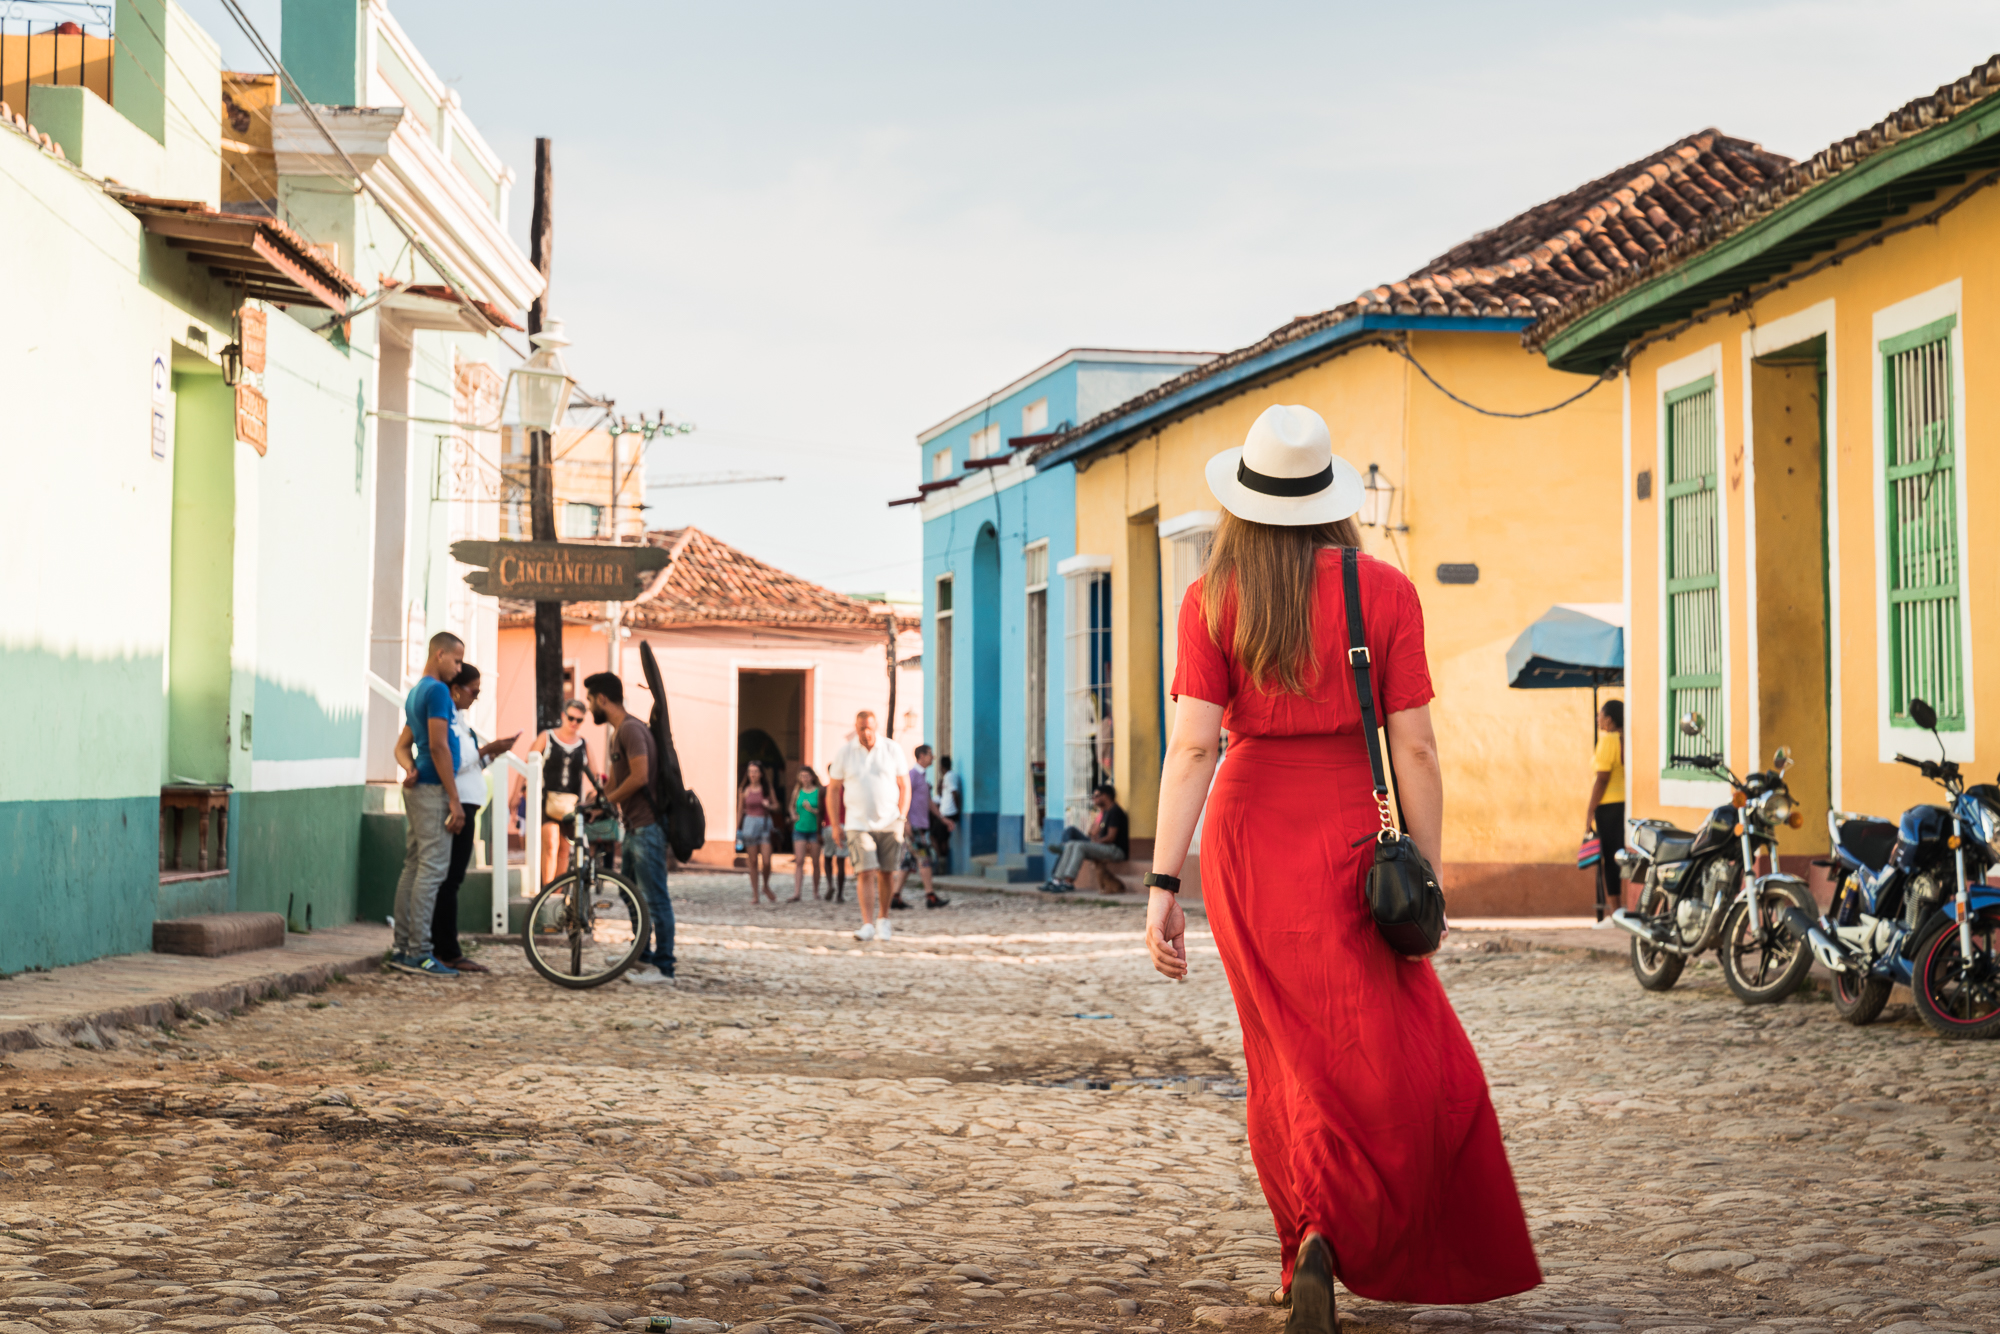 Our 2 Week Cuba Itinerary